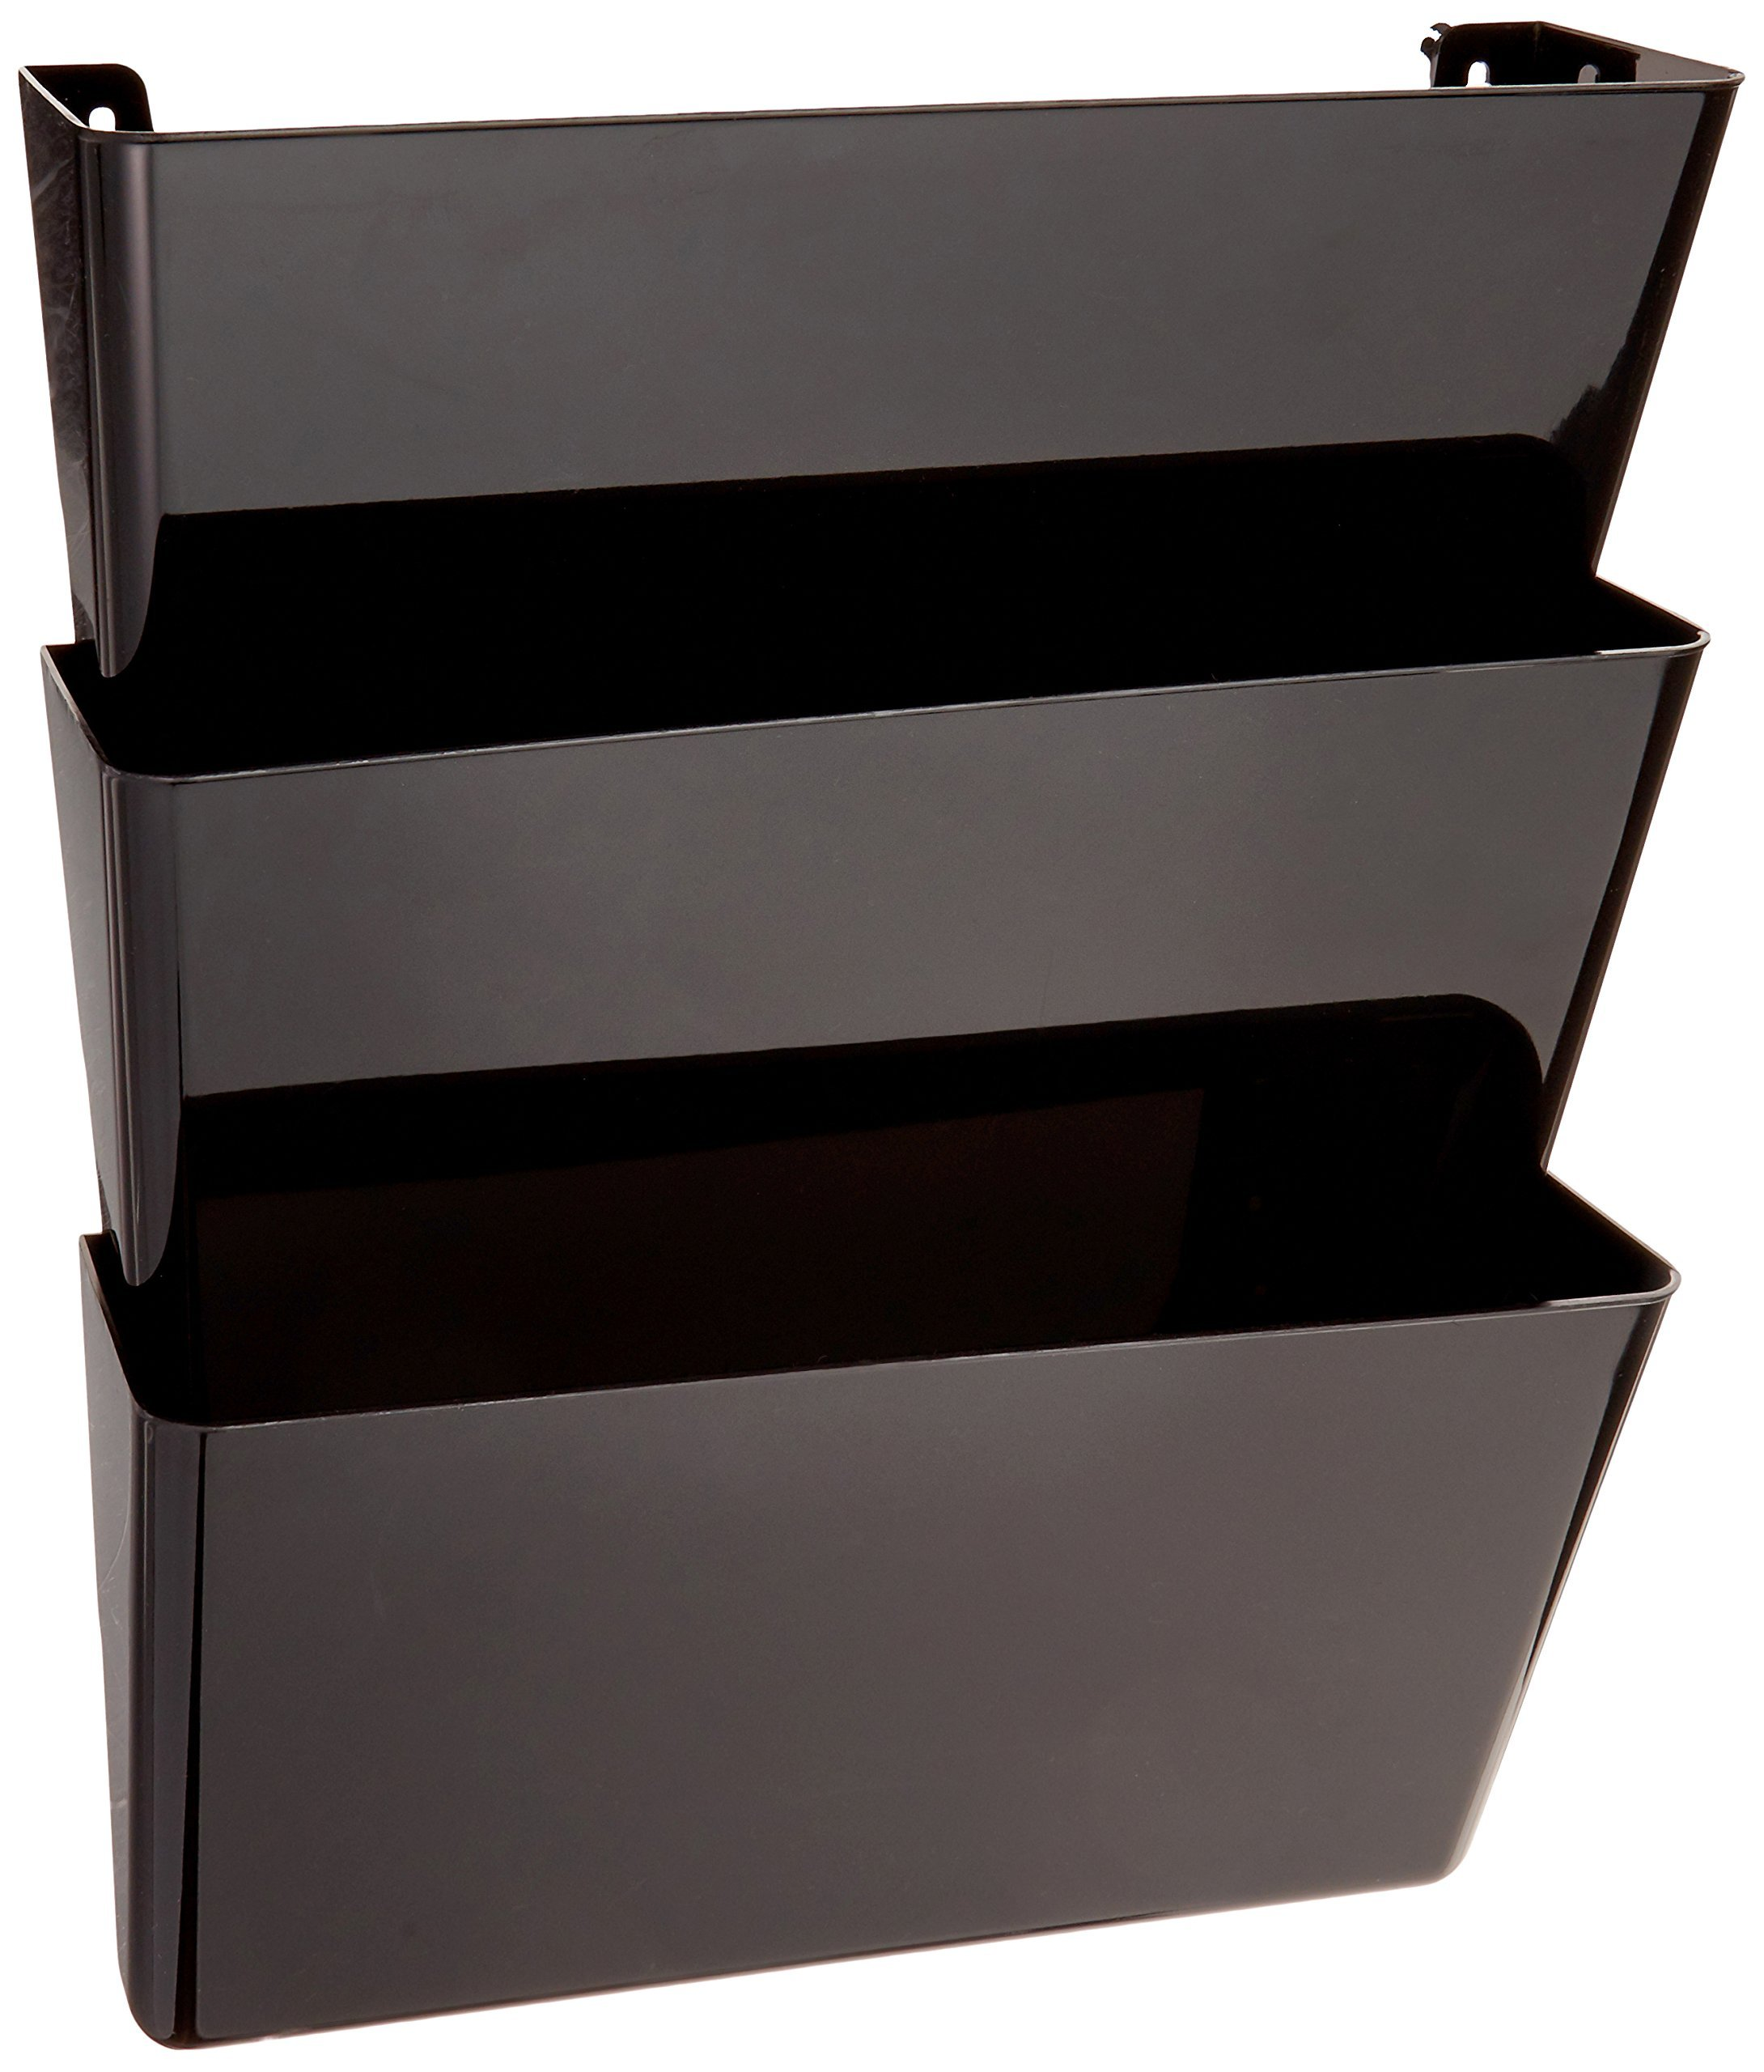 Deflecto Sustainable Office DocuPocket, Recycled Content, Wall File Organizer, Stackable, Letter Size, Black, Set of 3, 13''W x 7''H x 4''D by Deflecto